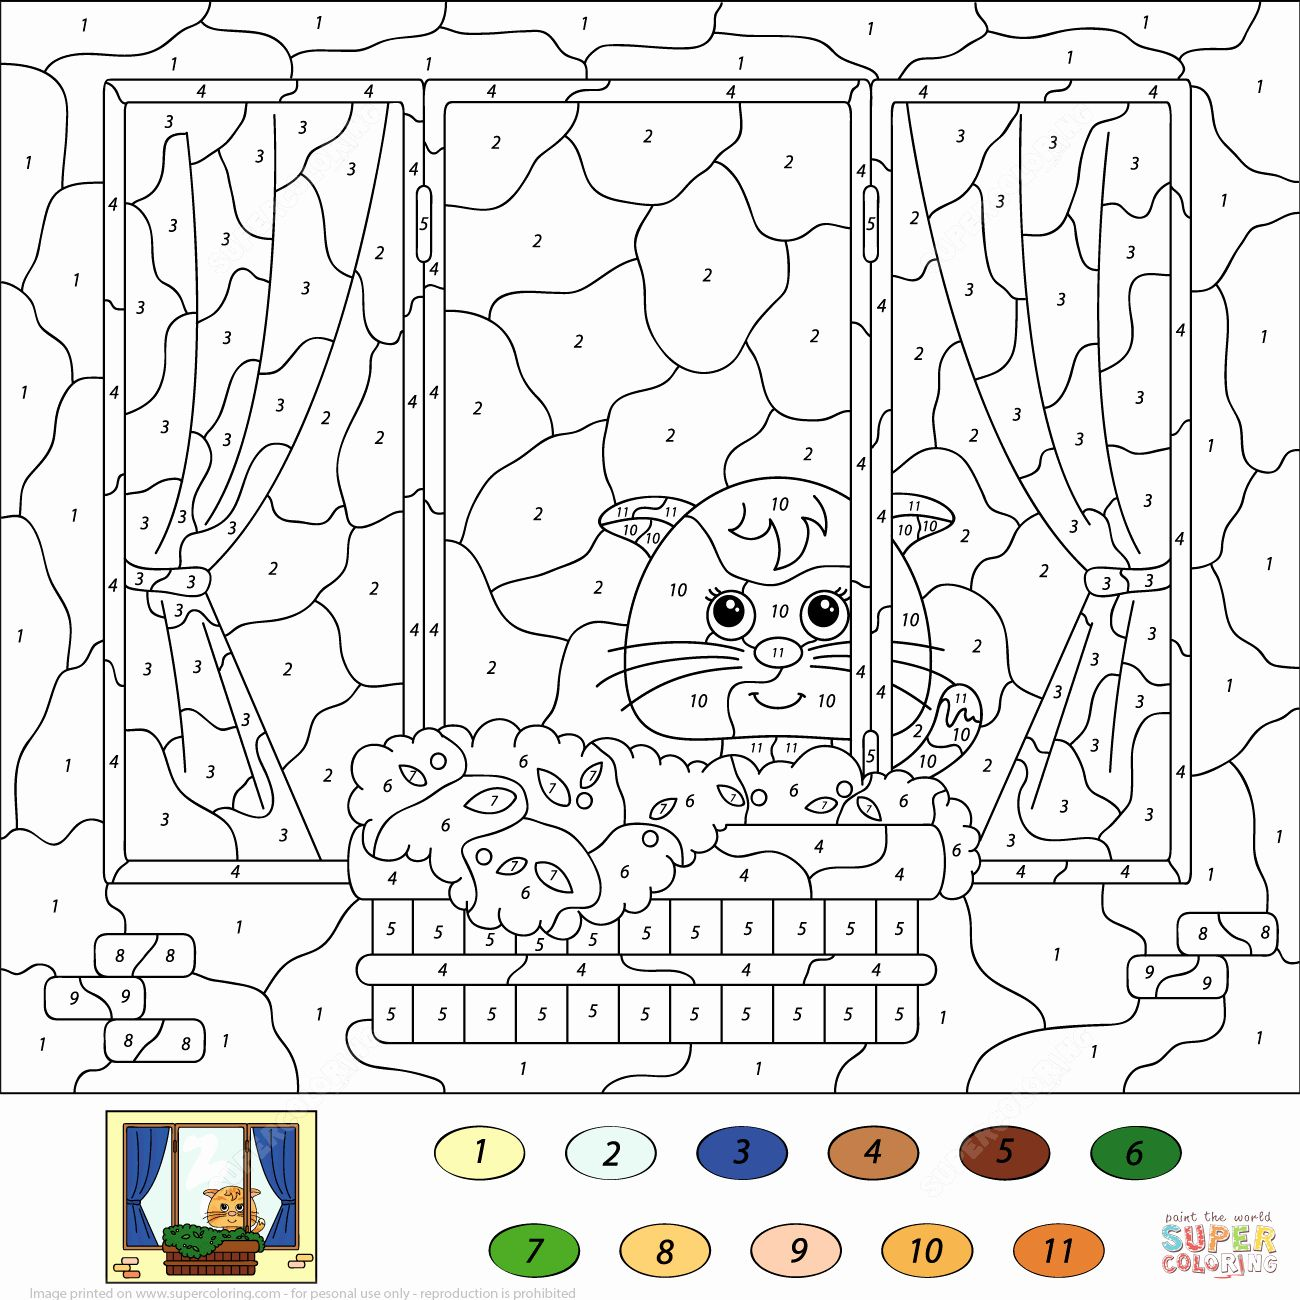 Coloring By Number Pages Best Of Cat Color By Number In 2020 Coloring Pages Free Disney Coloring Pages Coloring Books